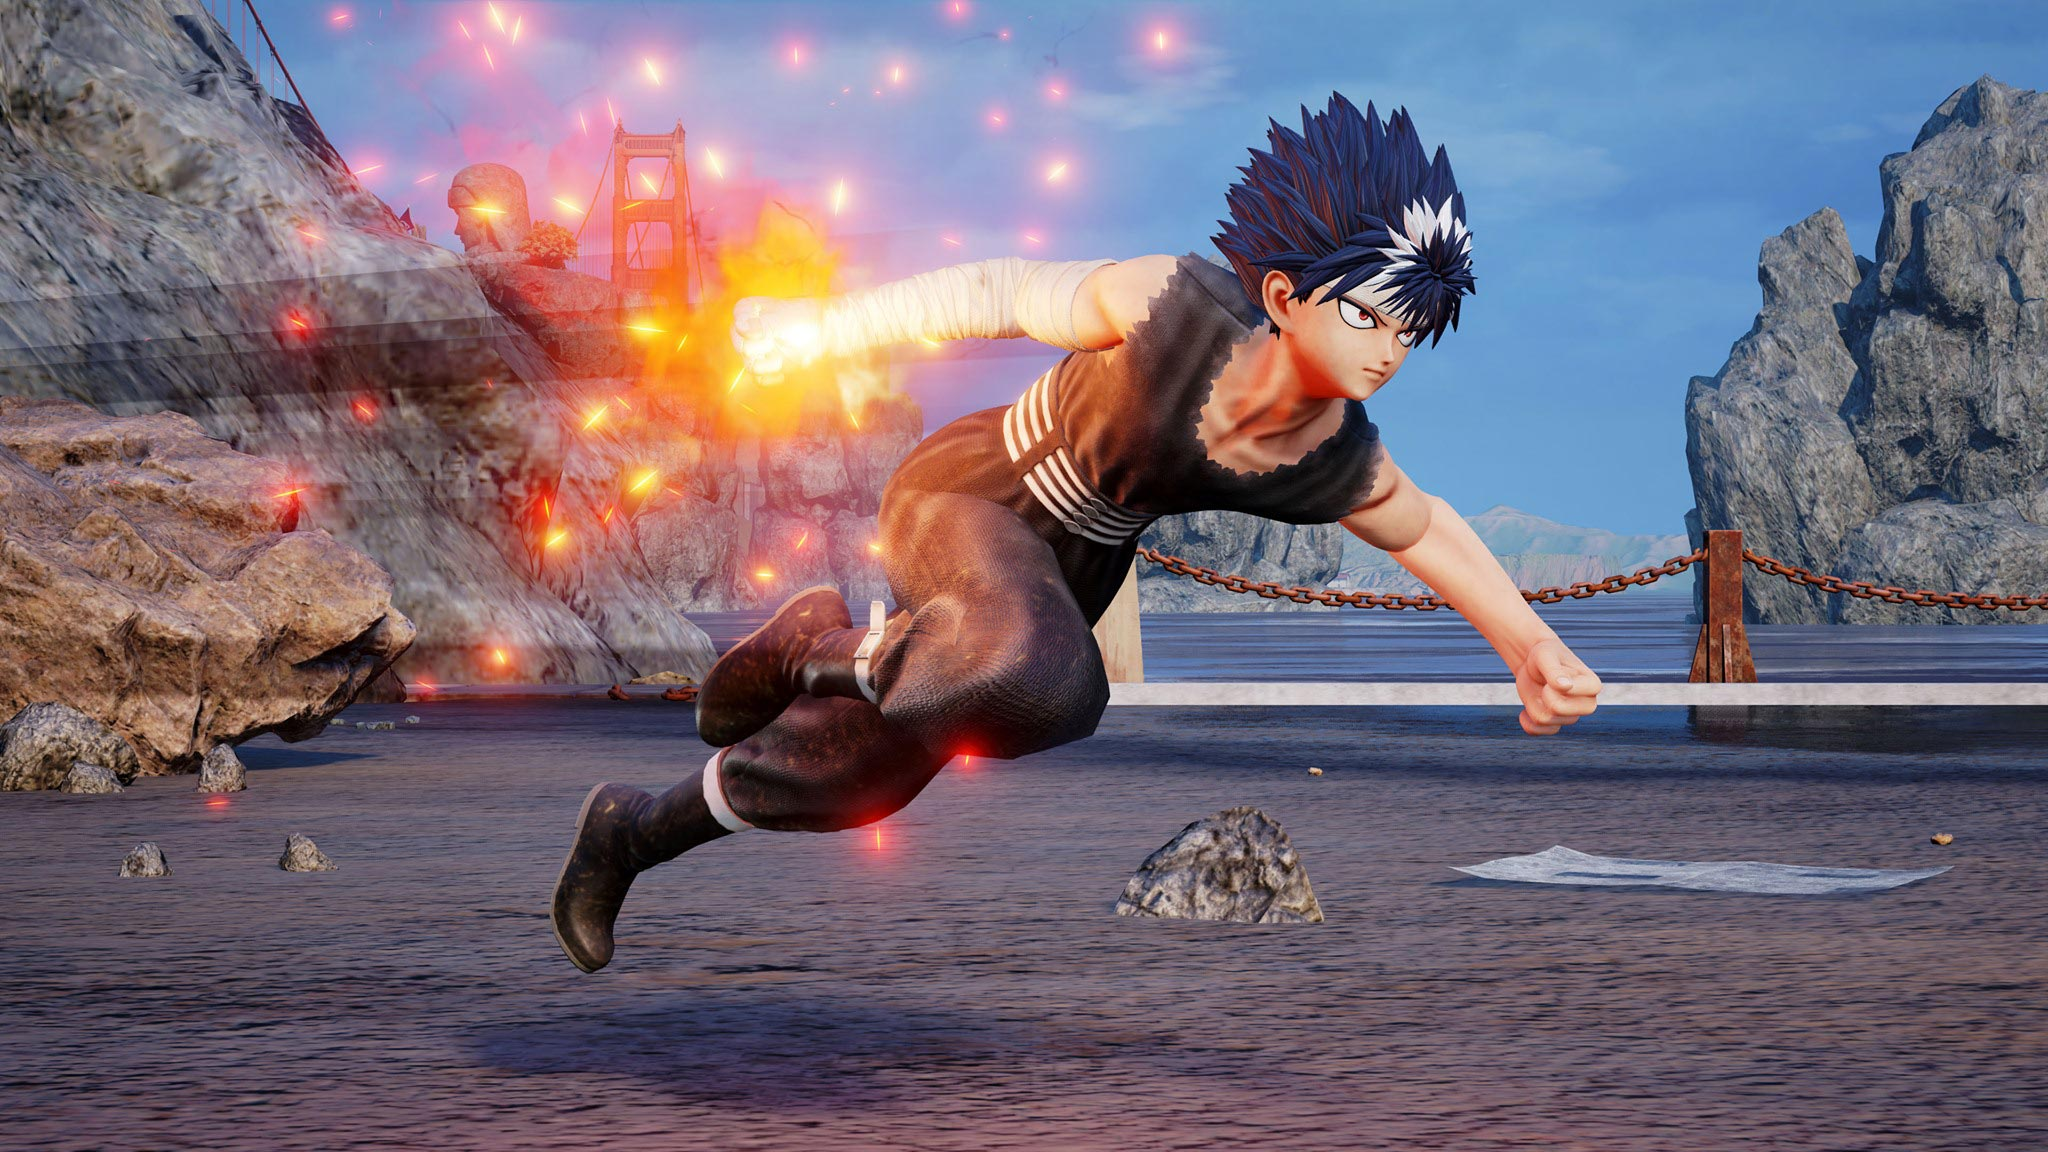 Jump Force Hiei screens 3 out of 4 image gallery